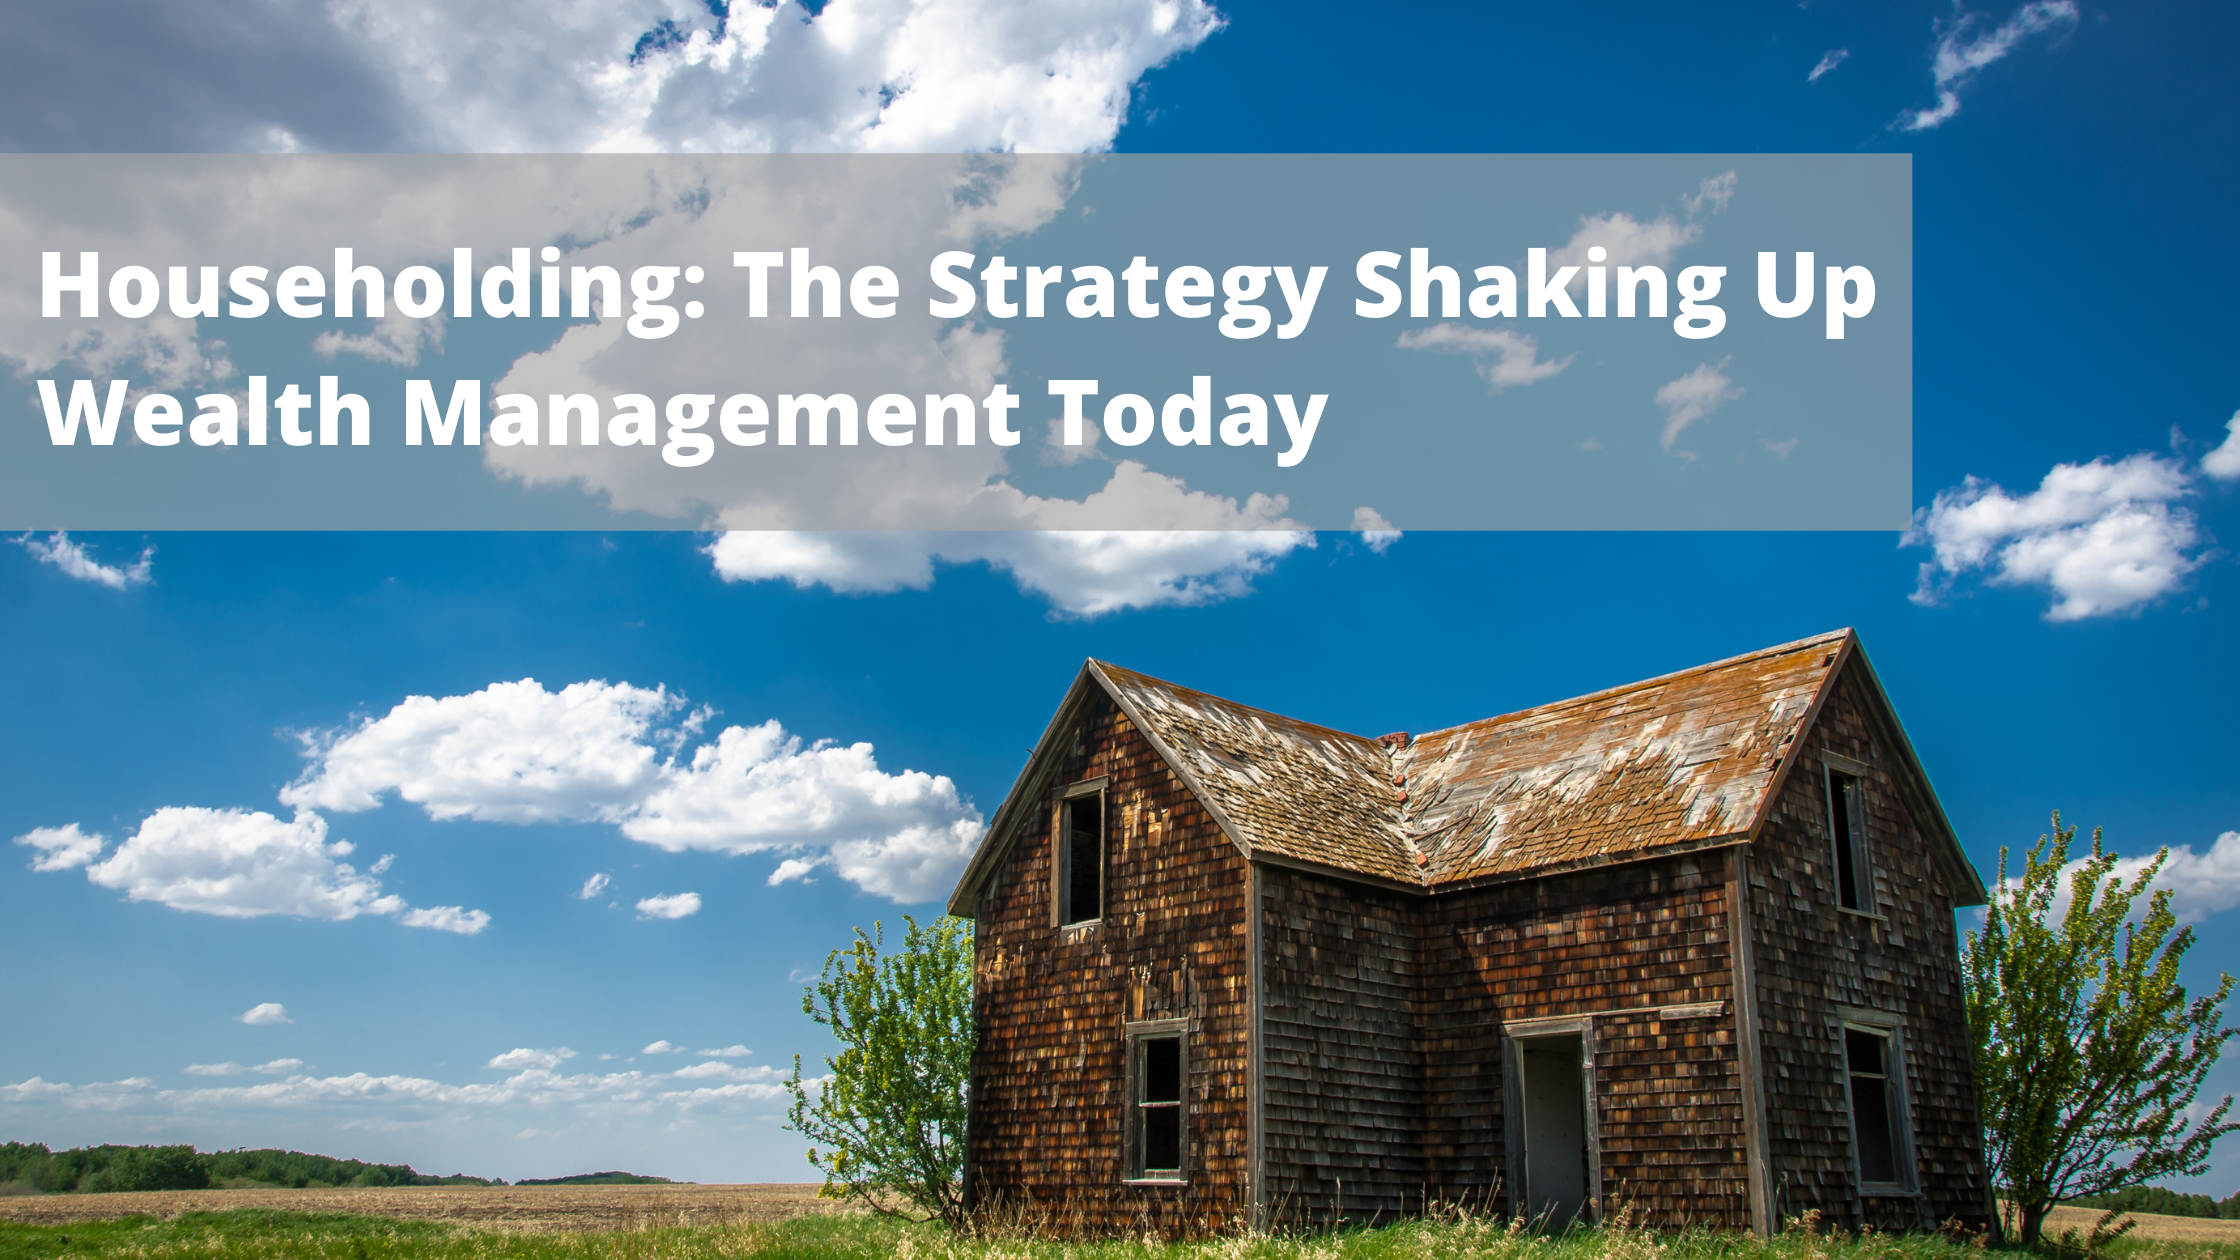 Householding: the strategy shaking up wealth management today